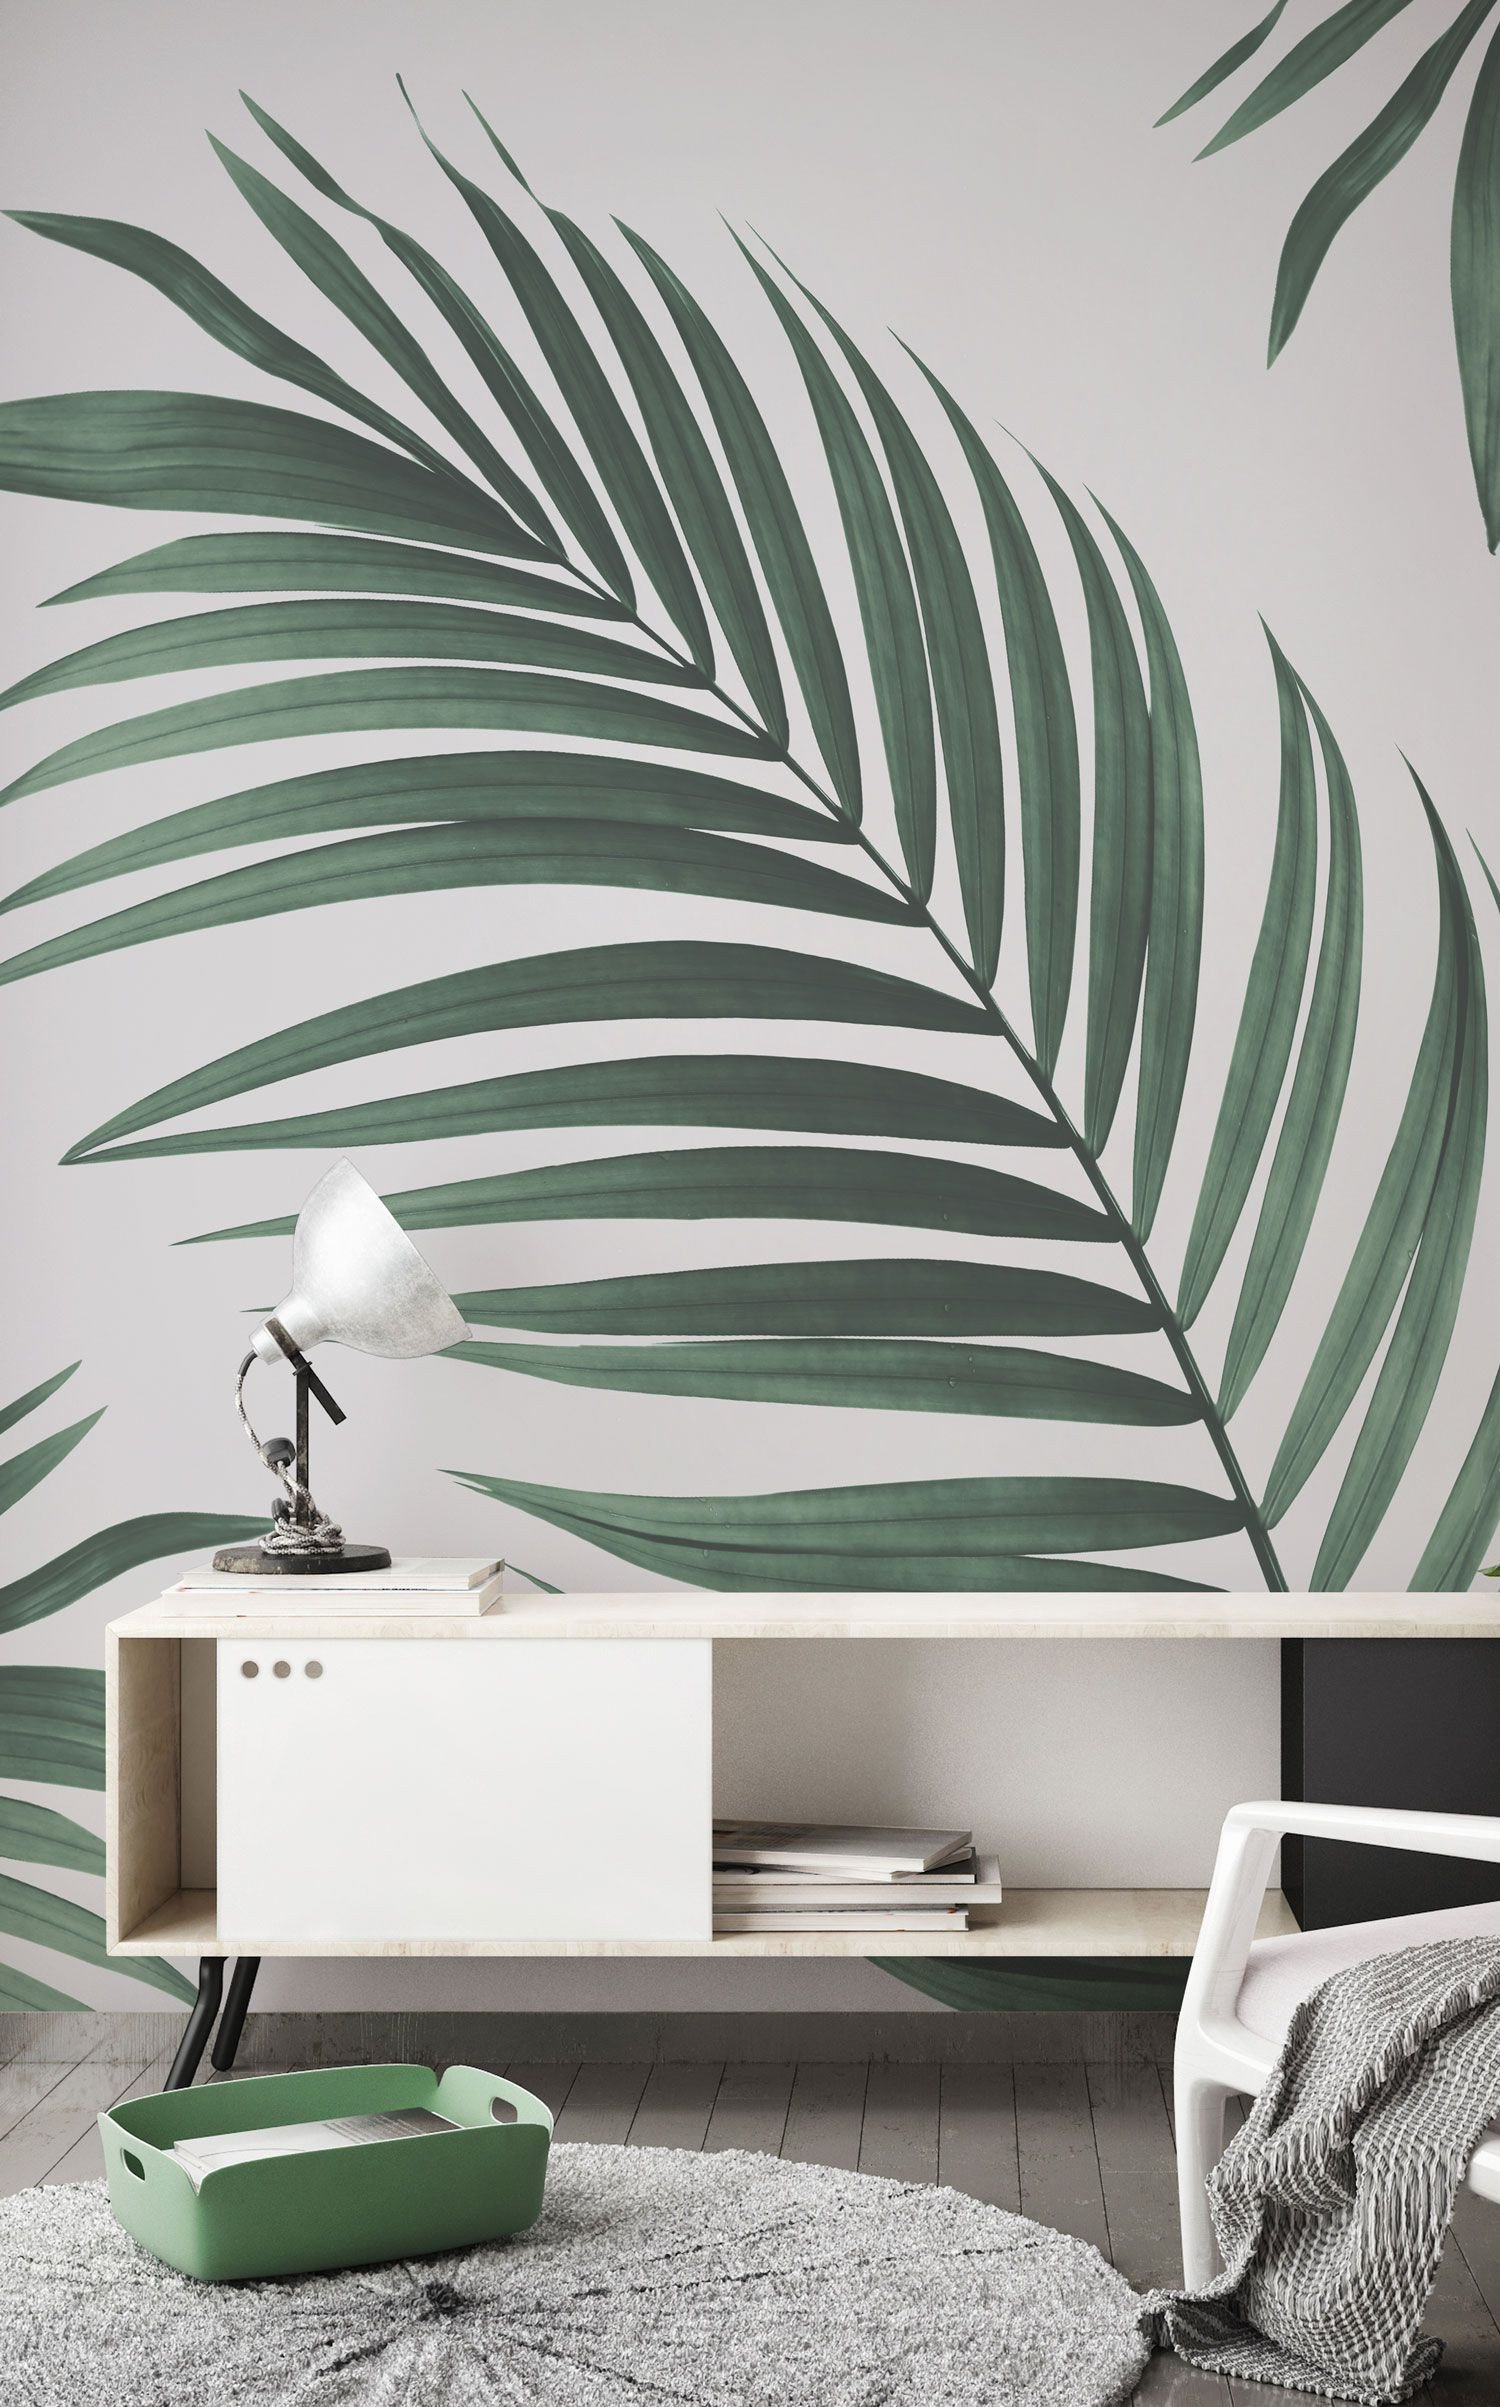 Wallpapers for Bedroom Wall Inspirational Tropical Palm Wall Mural